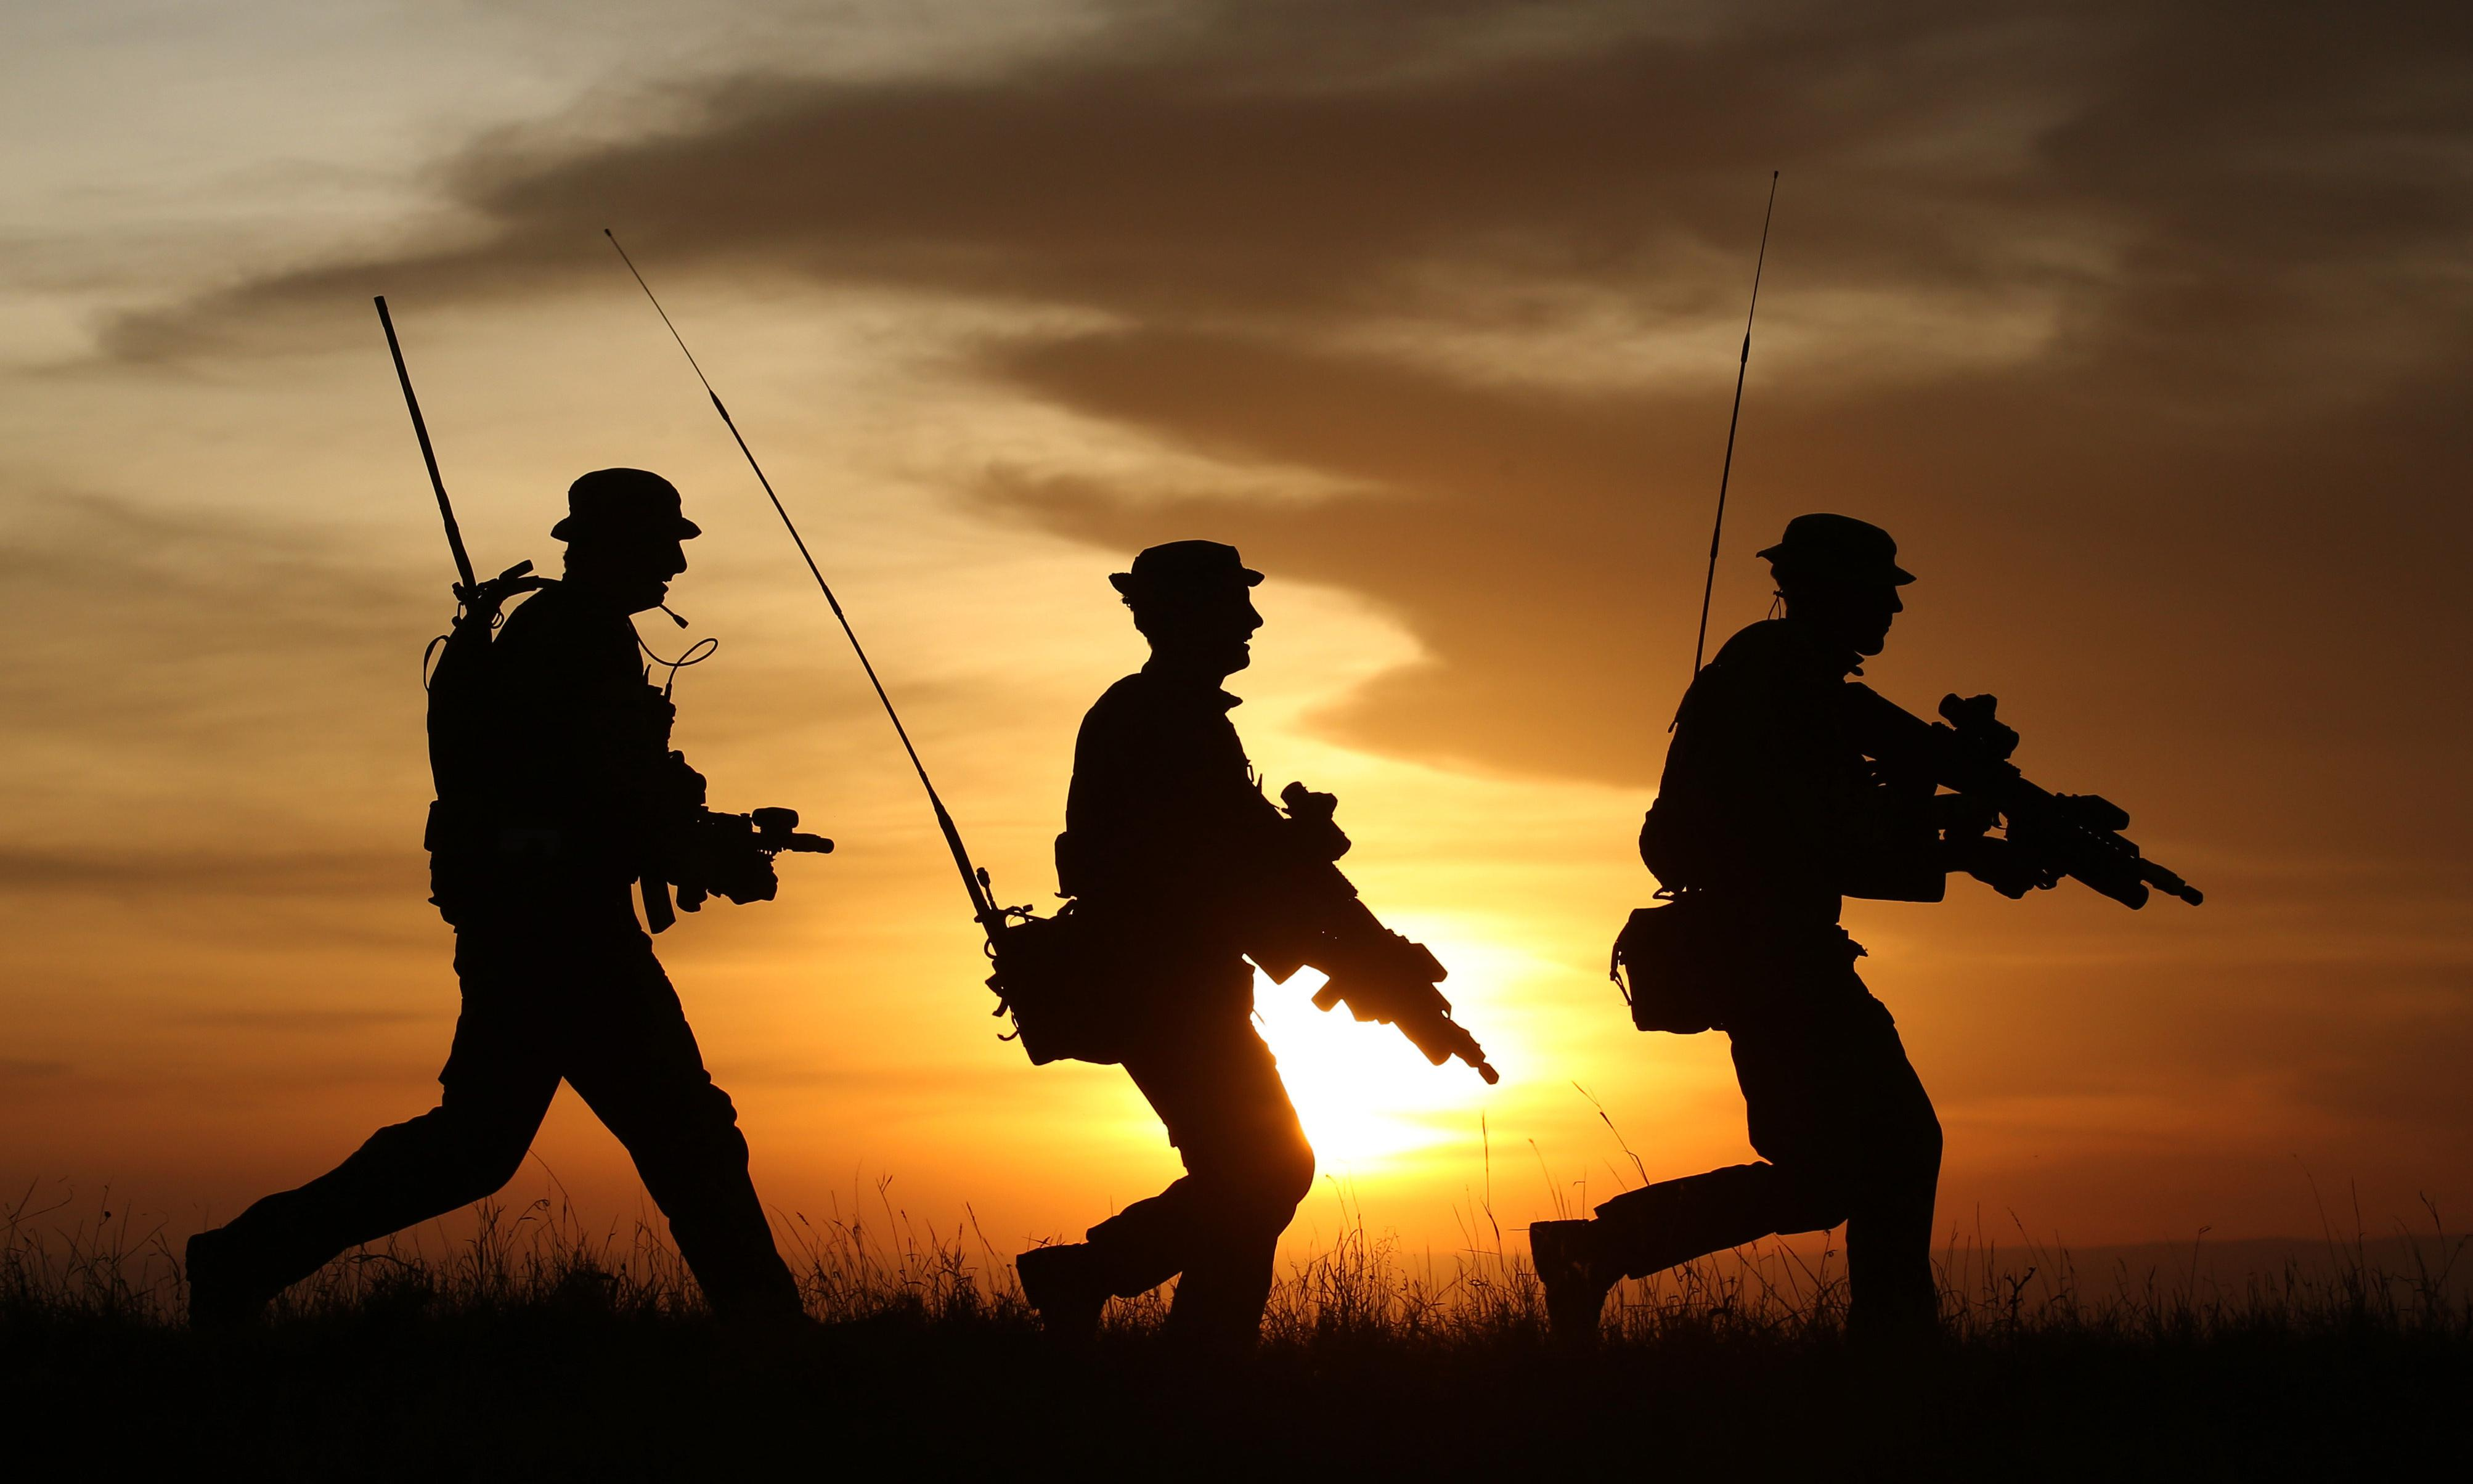 Britain's approach to security and war needs a radical rethink